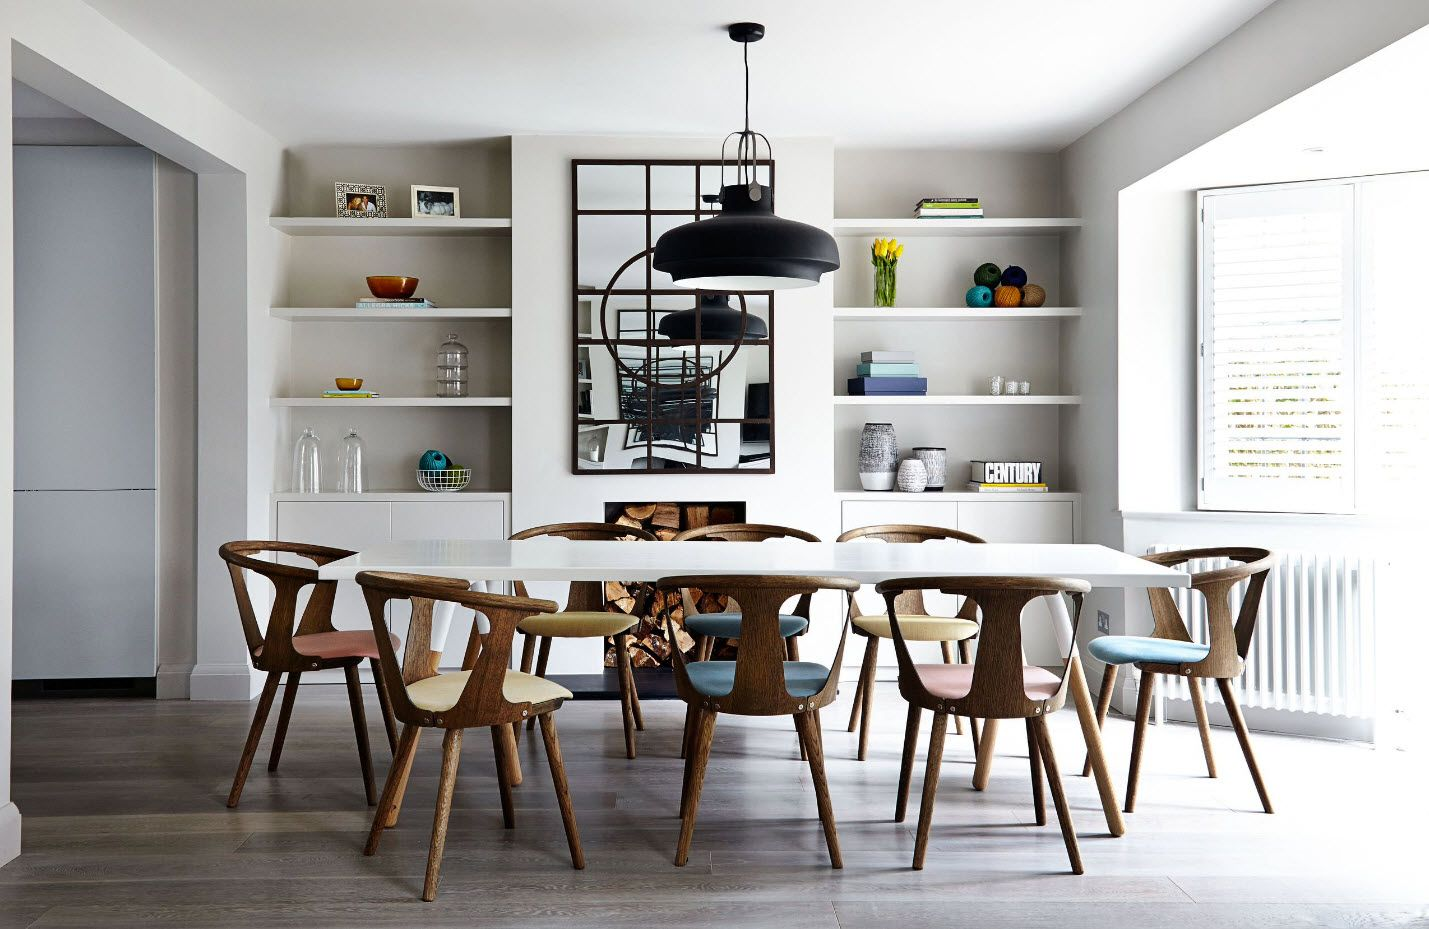 Dining Zone Table And Chairs: Practical And Aesthetic Composition. Wooden  Materials And Scandinavian Style